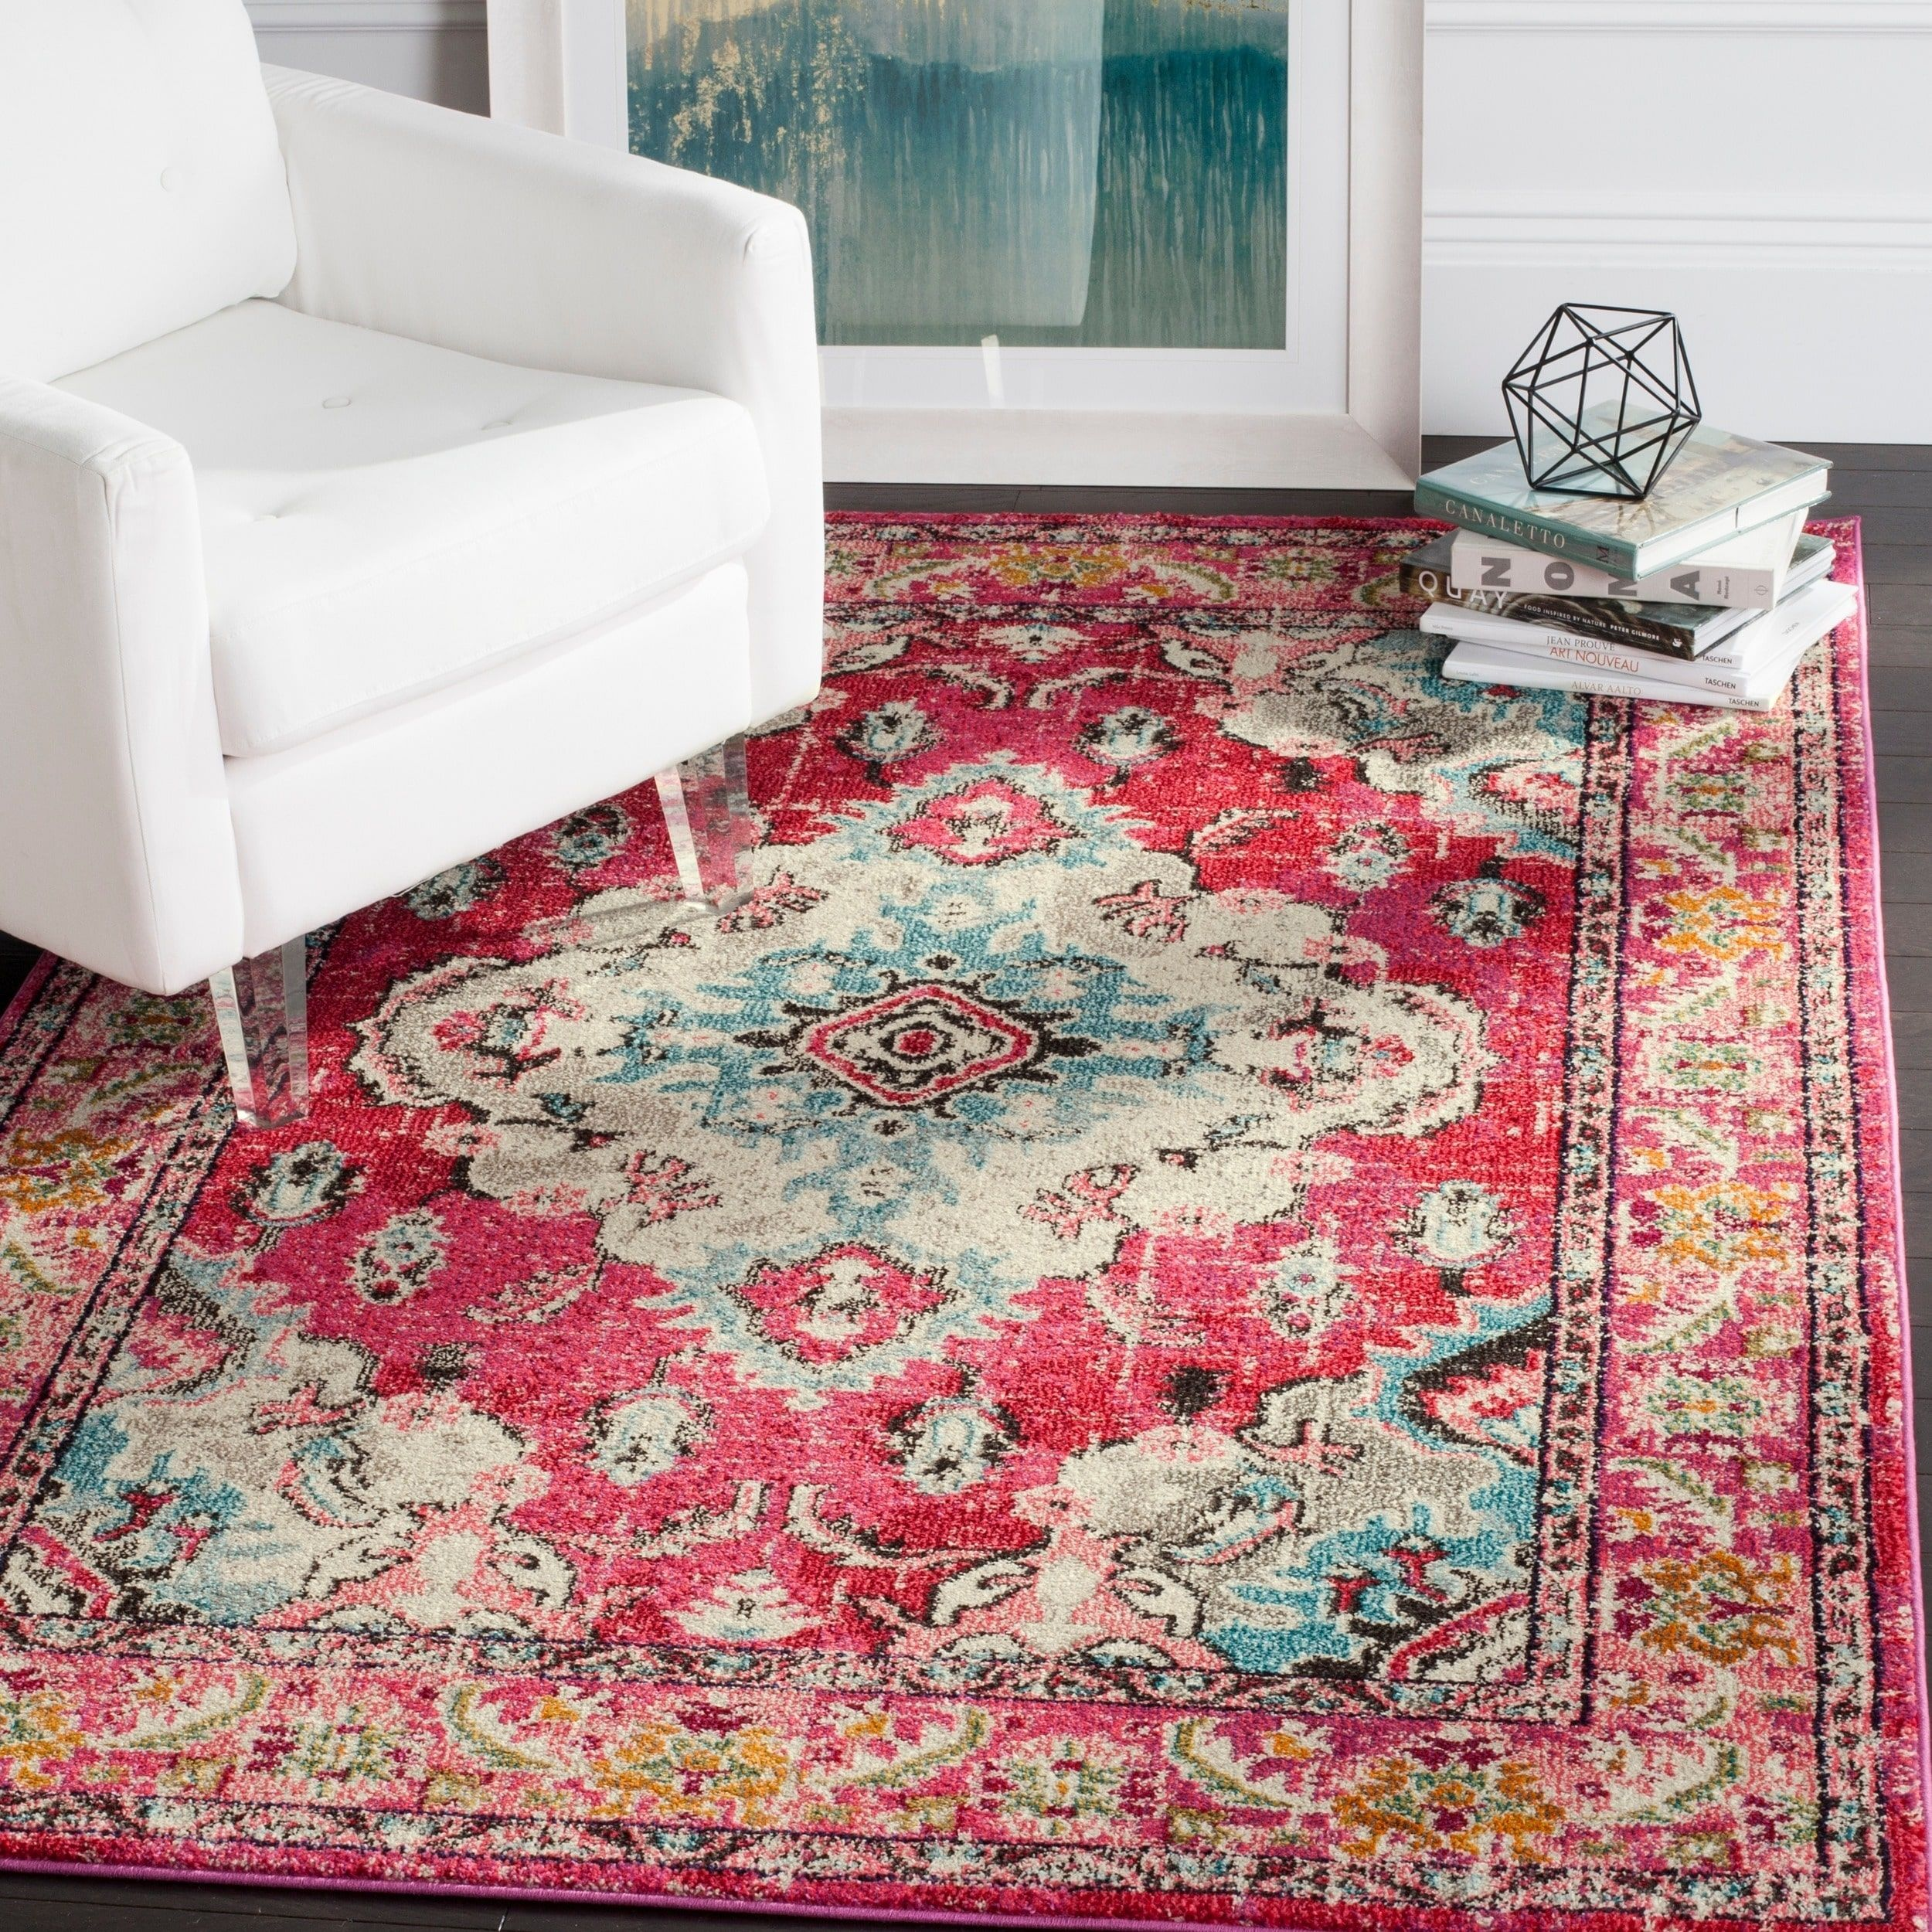 7x9 10x14 Rugs Use Large Area Rugs To Bring A New Mood To An Old Room Or To Plan Your Decor Around Multicolored Rugs Safavieh Monaco Traditional Area Rugs